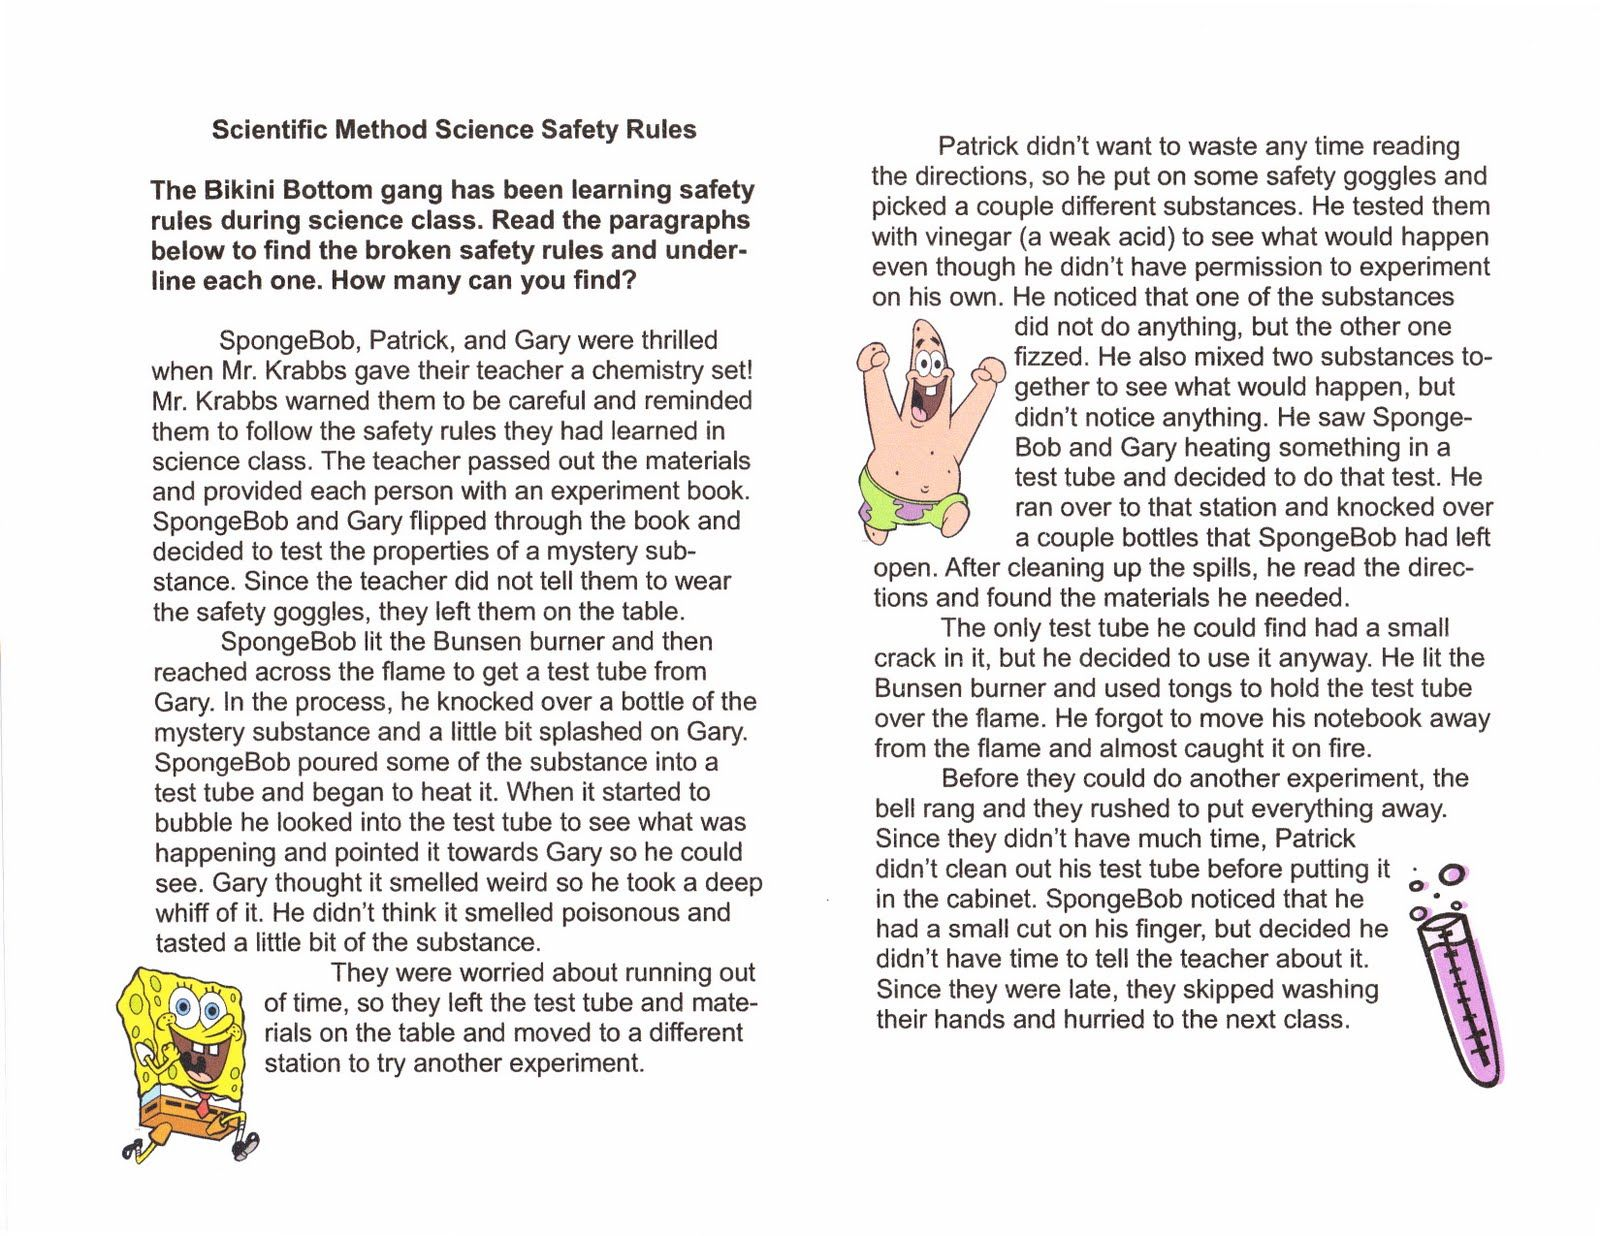 Worksheets Spongebob Science Worksheet spongebob science safety rules google search general search